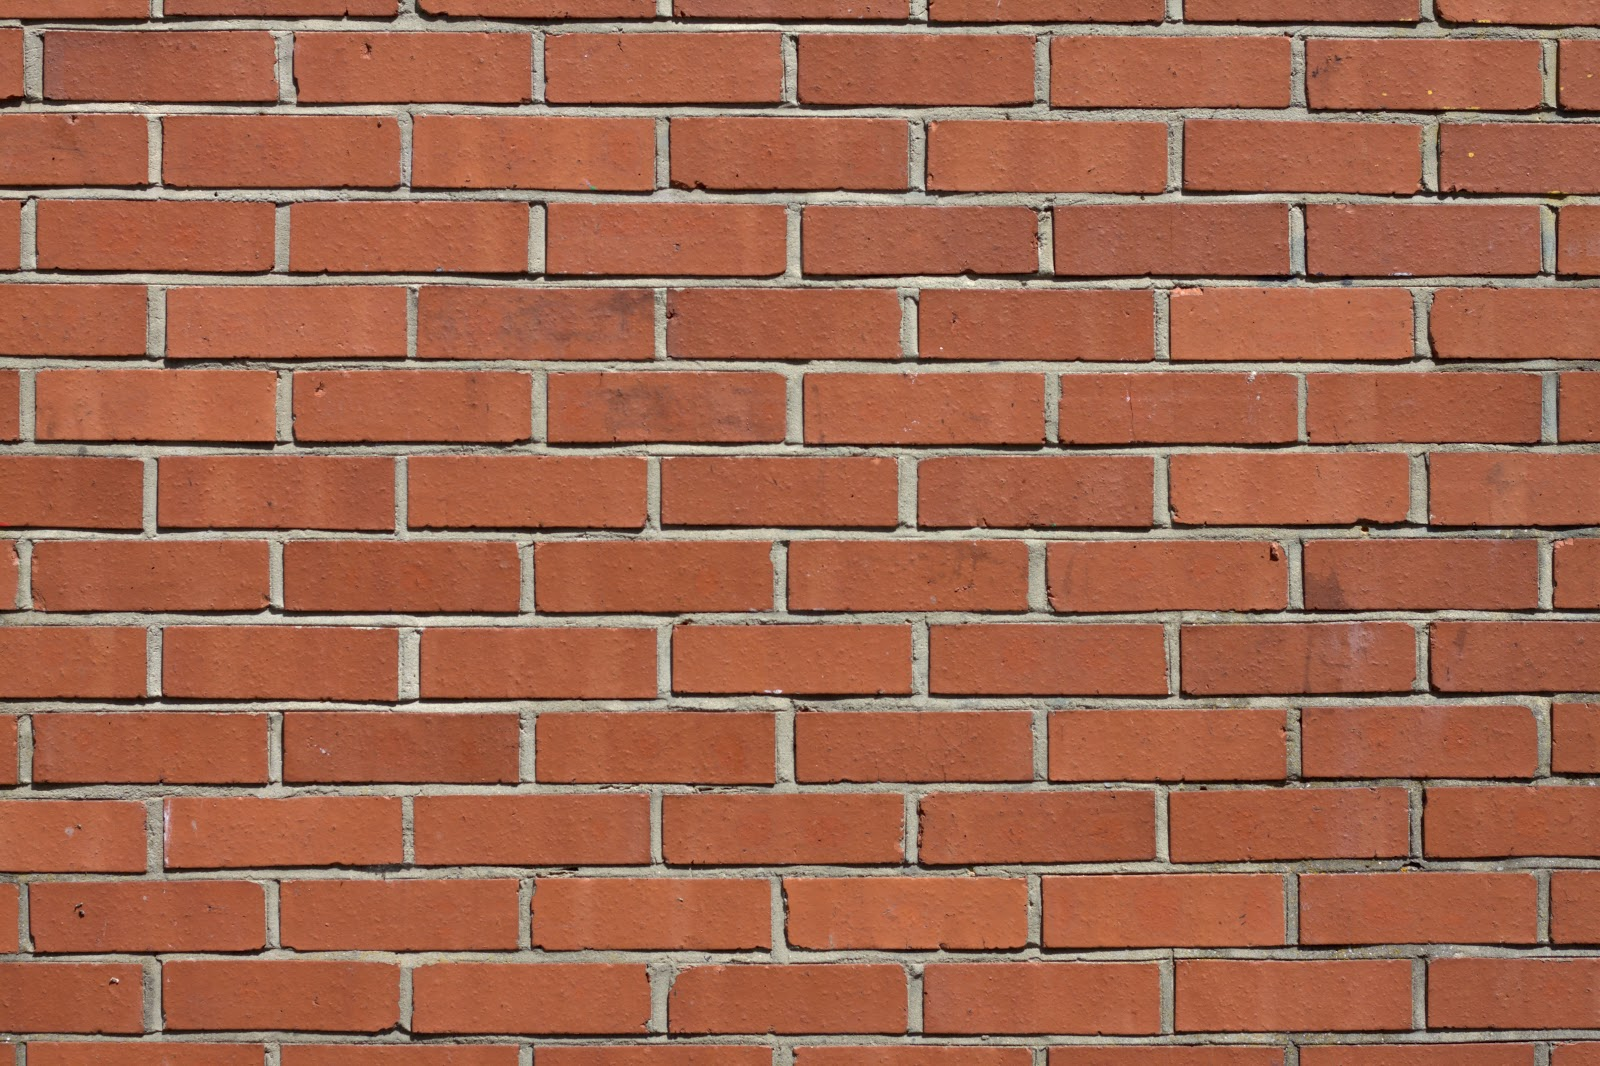 Brick Wall Building Texture Ver 6